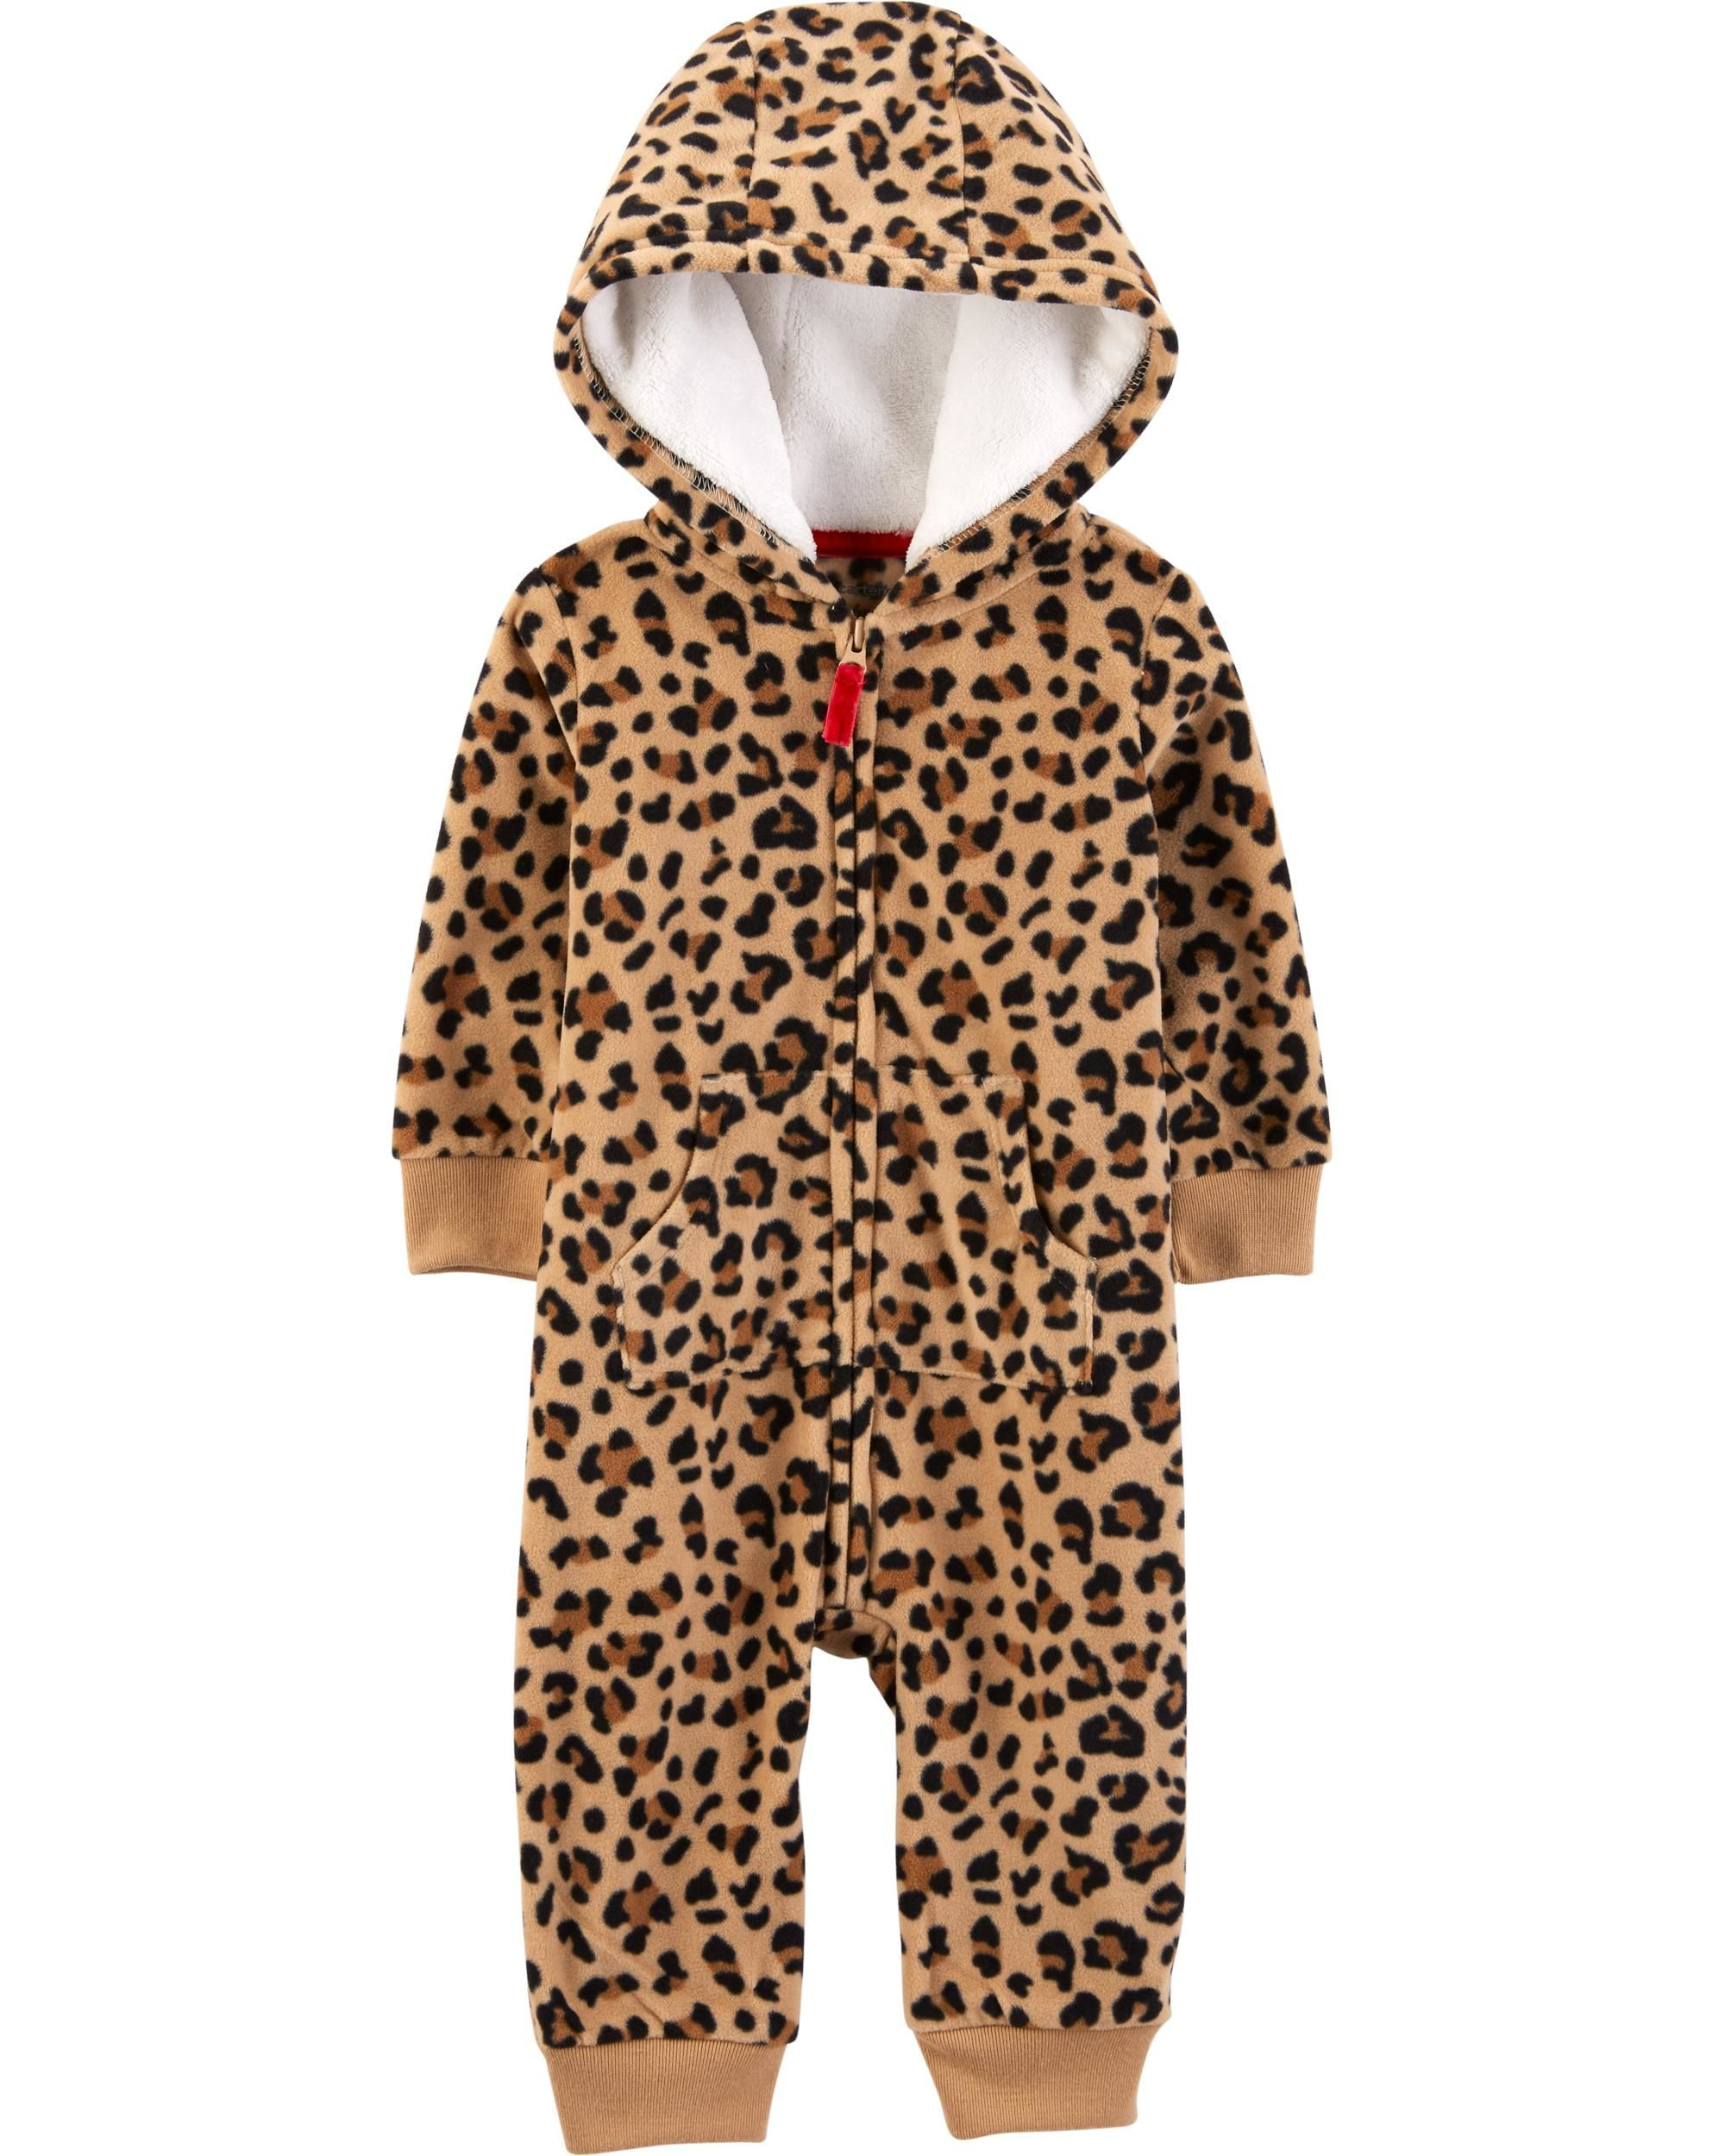 Leopard Hooded Fleece Jumpsuit Carters Baby Girl Leopard Baby Clothes Girls Cheetah Print